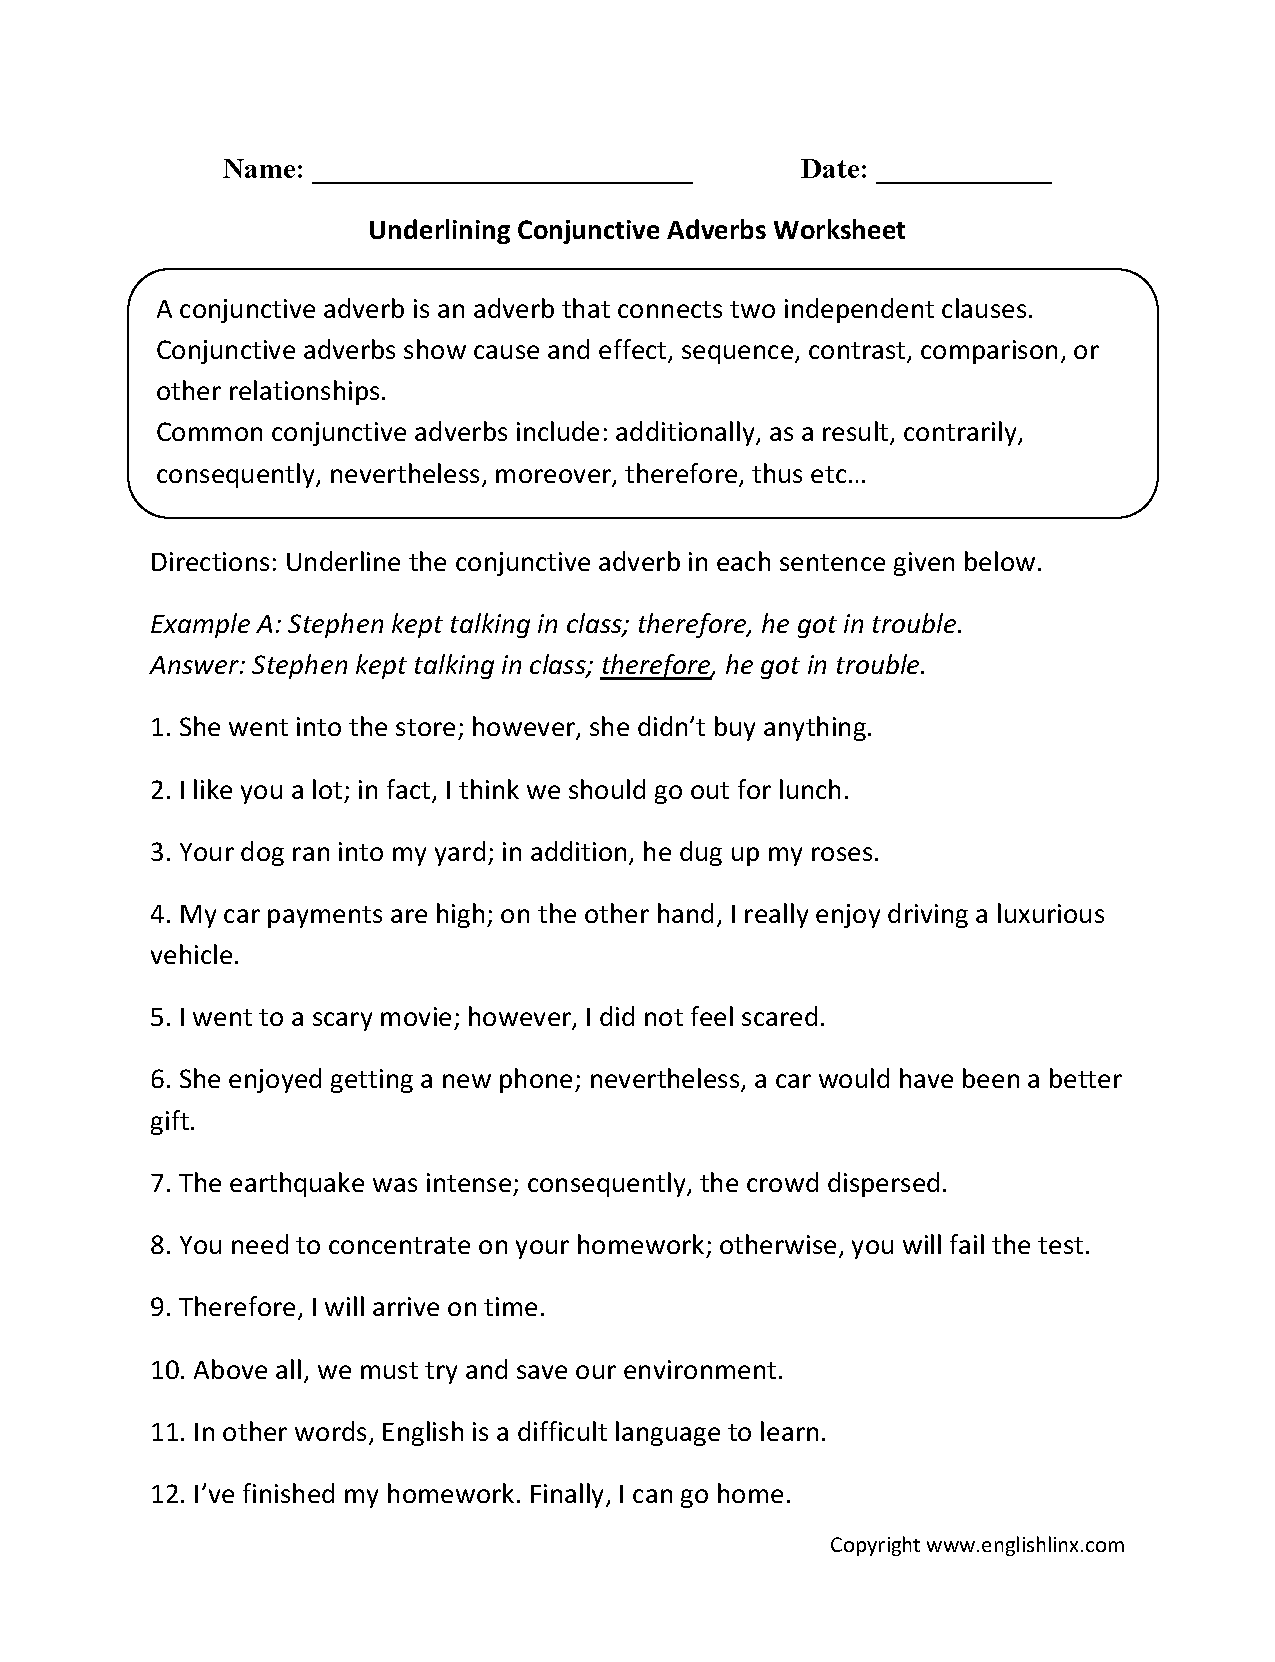 Proatmealus  Marvelous Englishlinxcom  Conjunctions Worksheets With Engaging Worksheet With Easy On The Eye Nomenclature Worksheets Also Social Studies Worksheets Pdf In Addition First Grade Rhyming Worksheets And Martin Luther Worksheet As Well As Mixed Number Word Problems Worksheets Additionally Water Cycle Printable Worksheets From Englishlinxcom With Proatmealus  Engaging Englishlinxcom  Conjunctions Worksheets With Easy On The Eye Worksheet And Marvelous Nomenclature Worksheets Also Social Studies Worksheets Pdf In Addition First Grade Rhyming Worksheets From Englishlinxcom